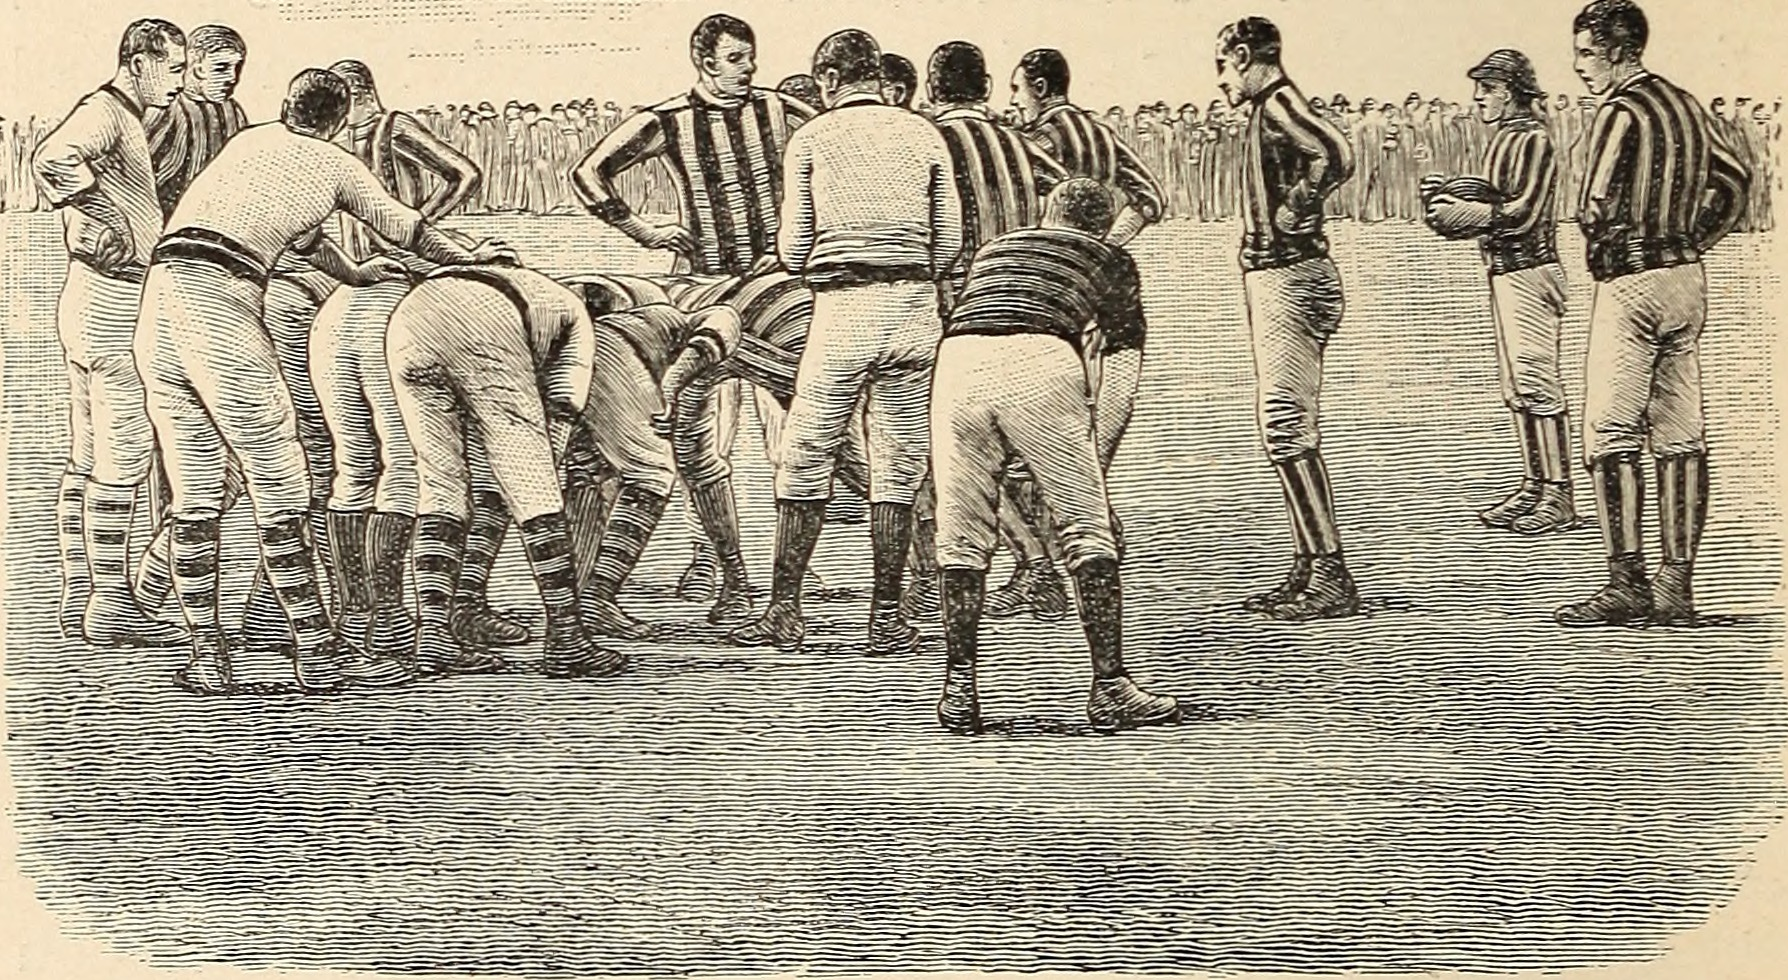 Forming_a_scrum_in_early_rugby_union